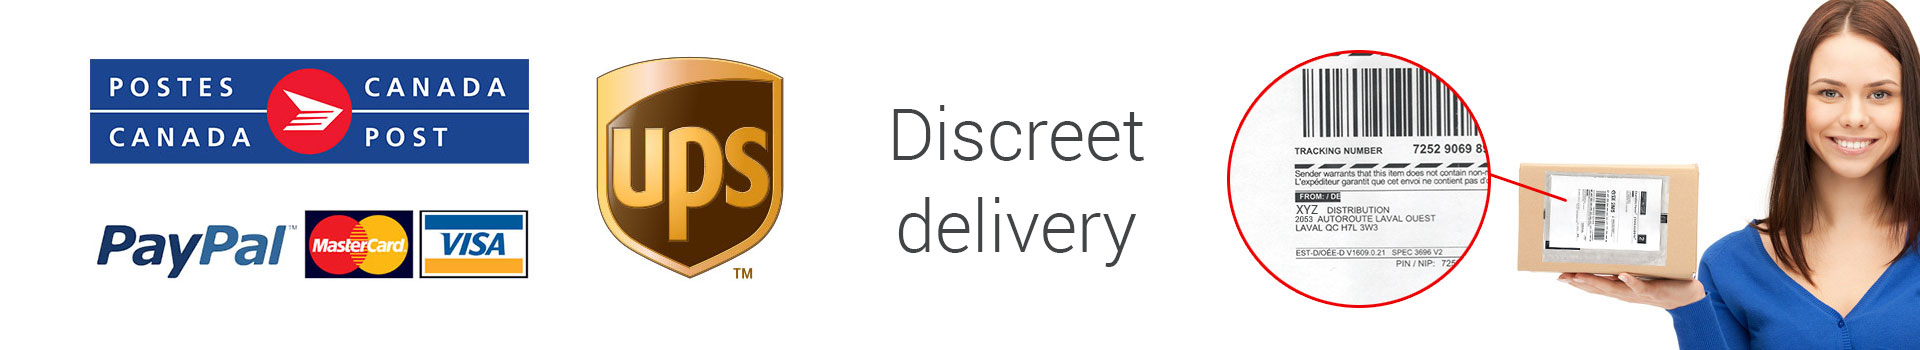 Discreet delivery Secured payments